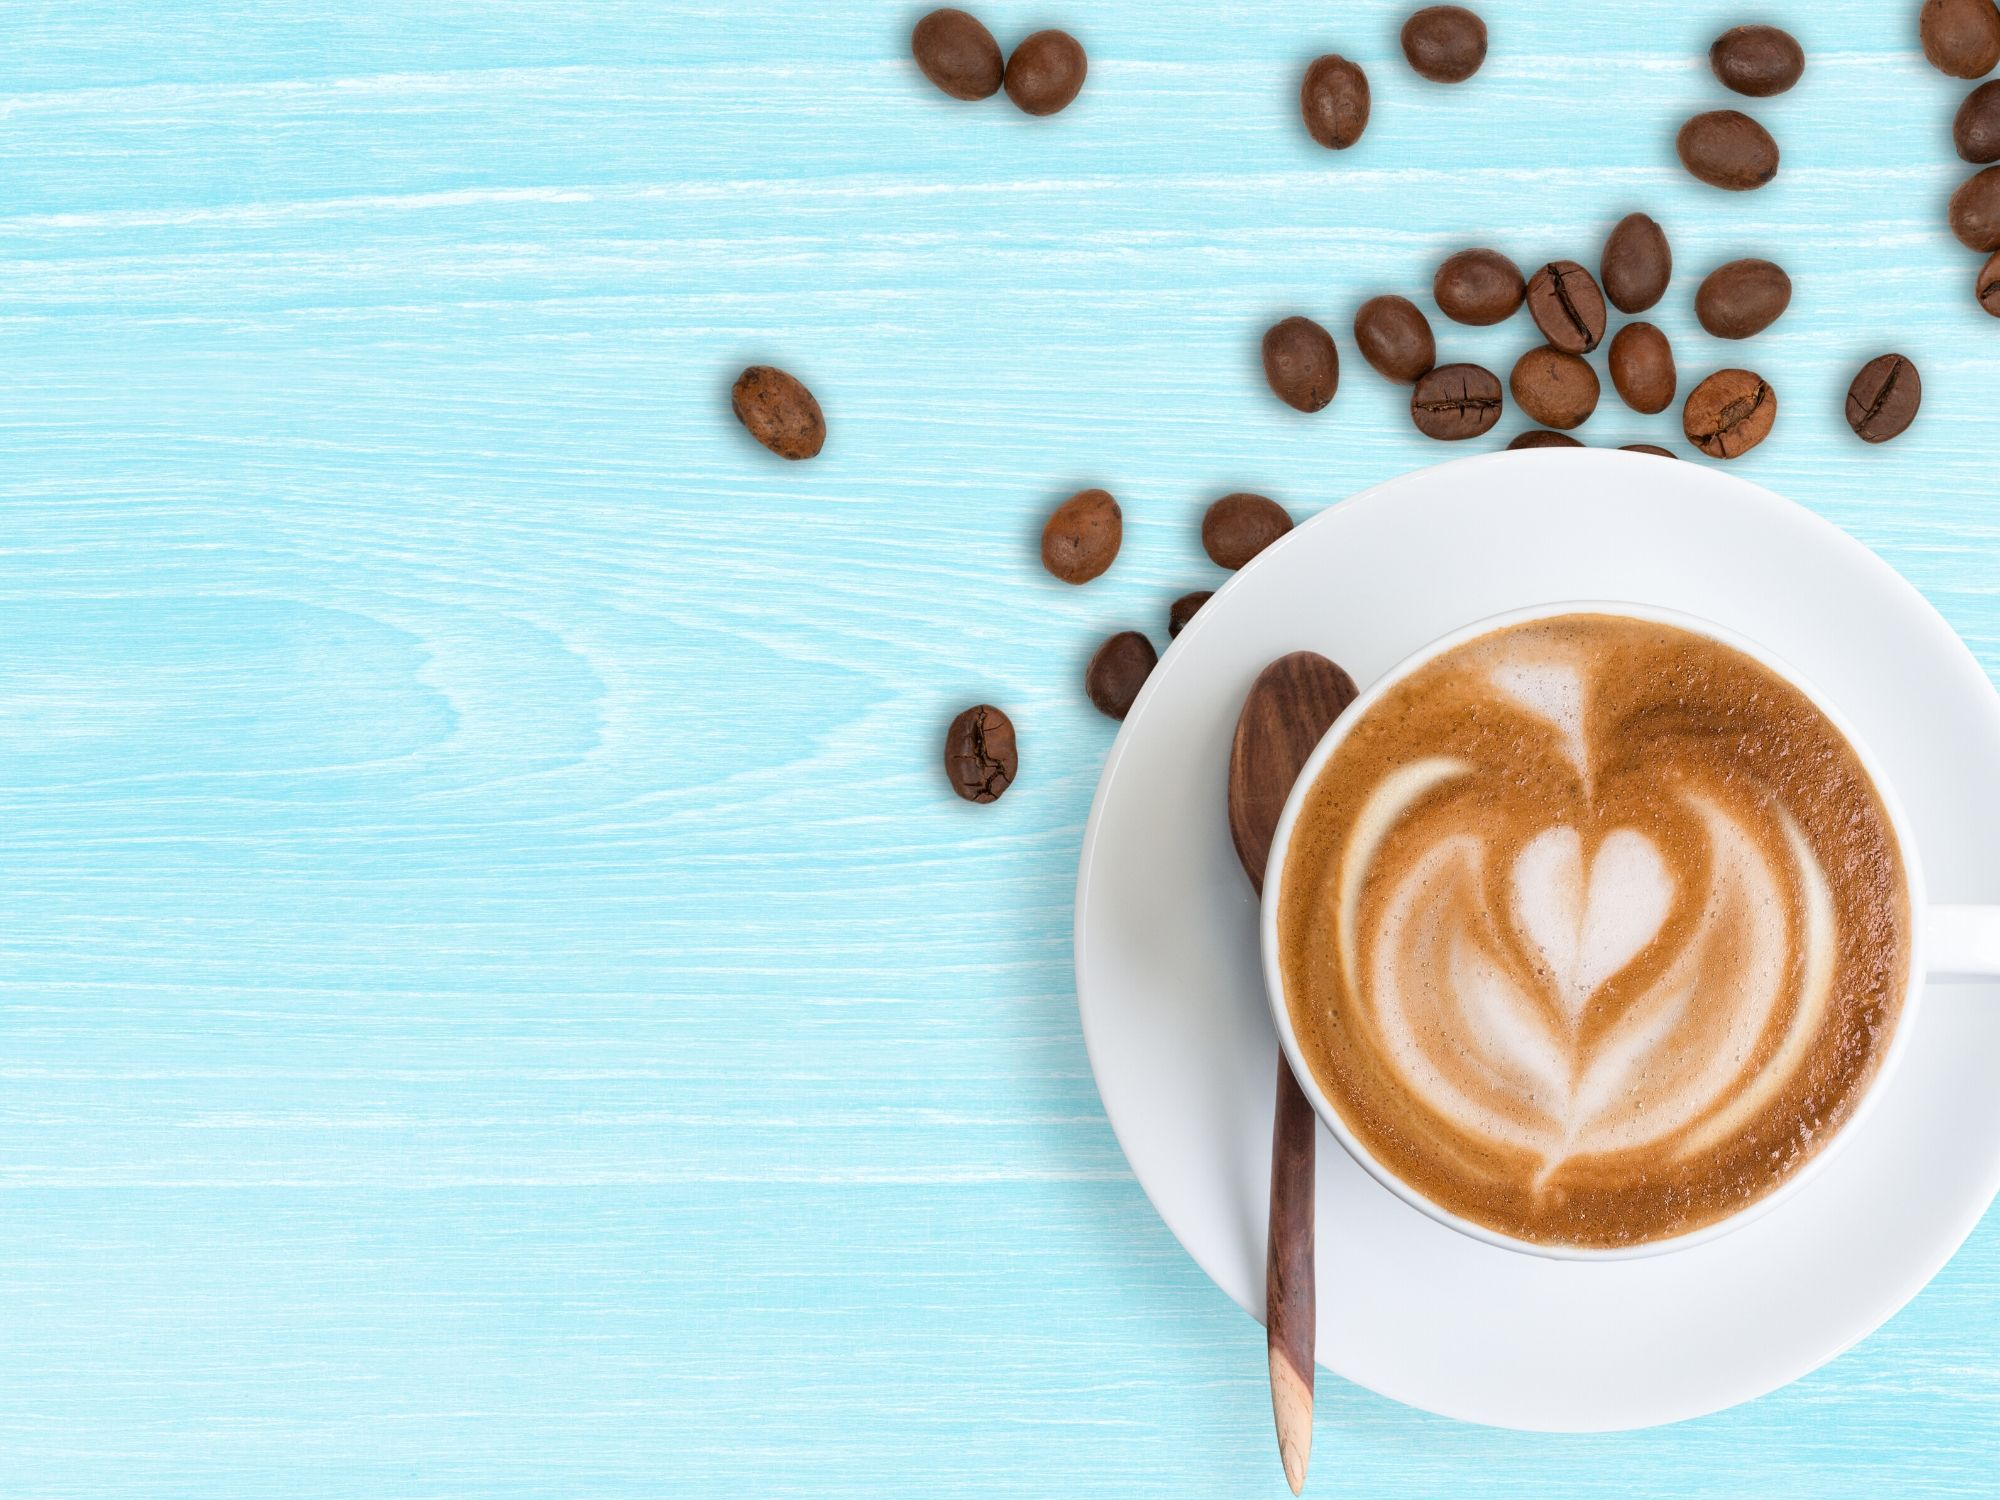 Cup of coffee and latte Easy ways to save money on food and groceries - MyFinancialHill